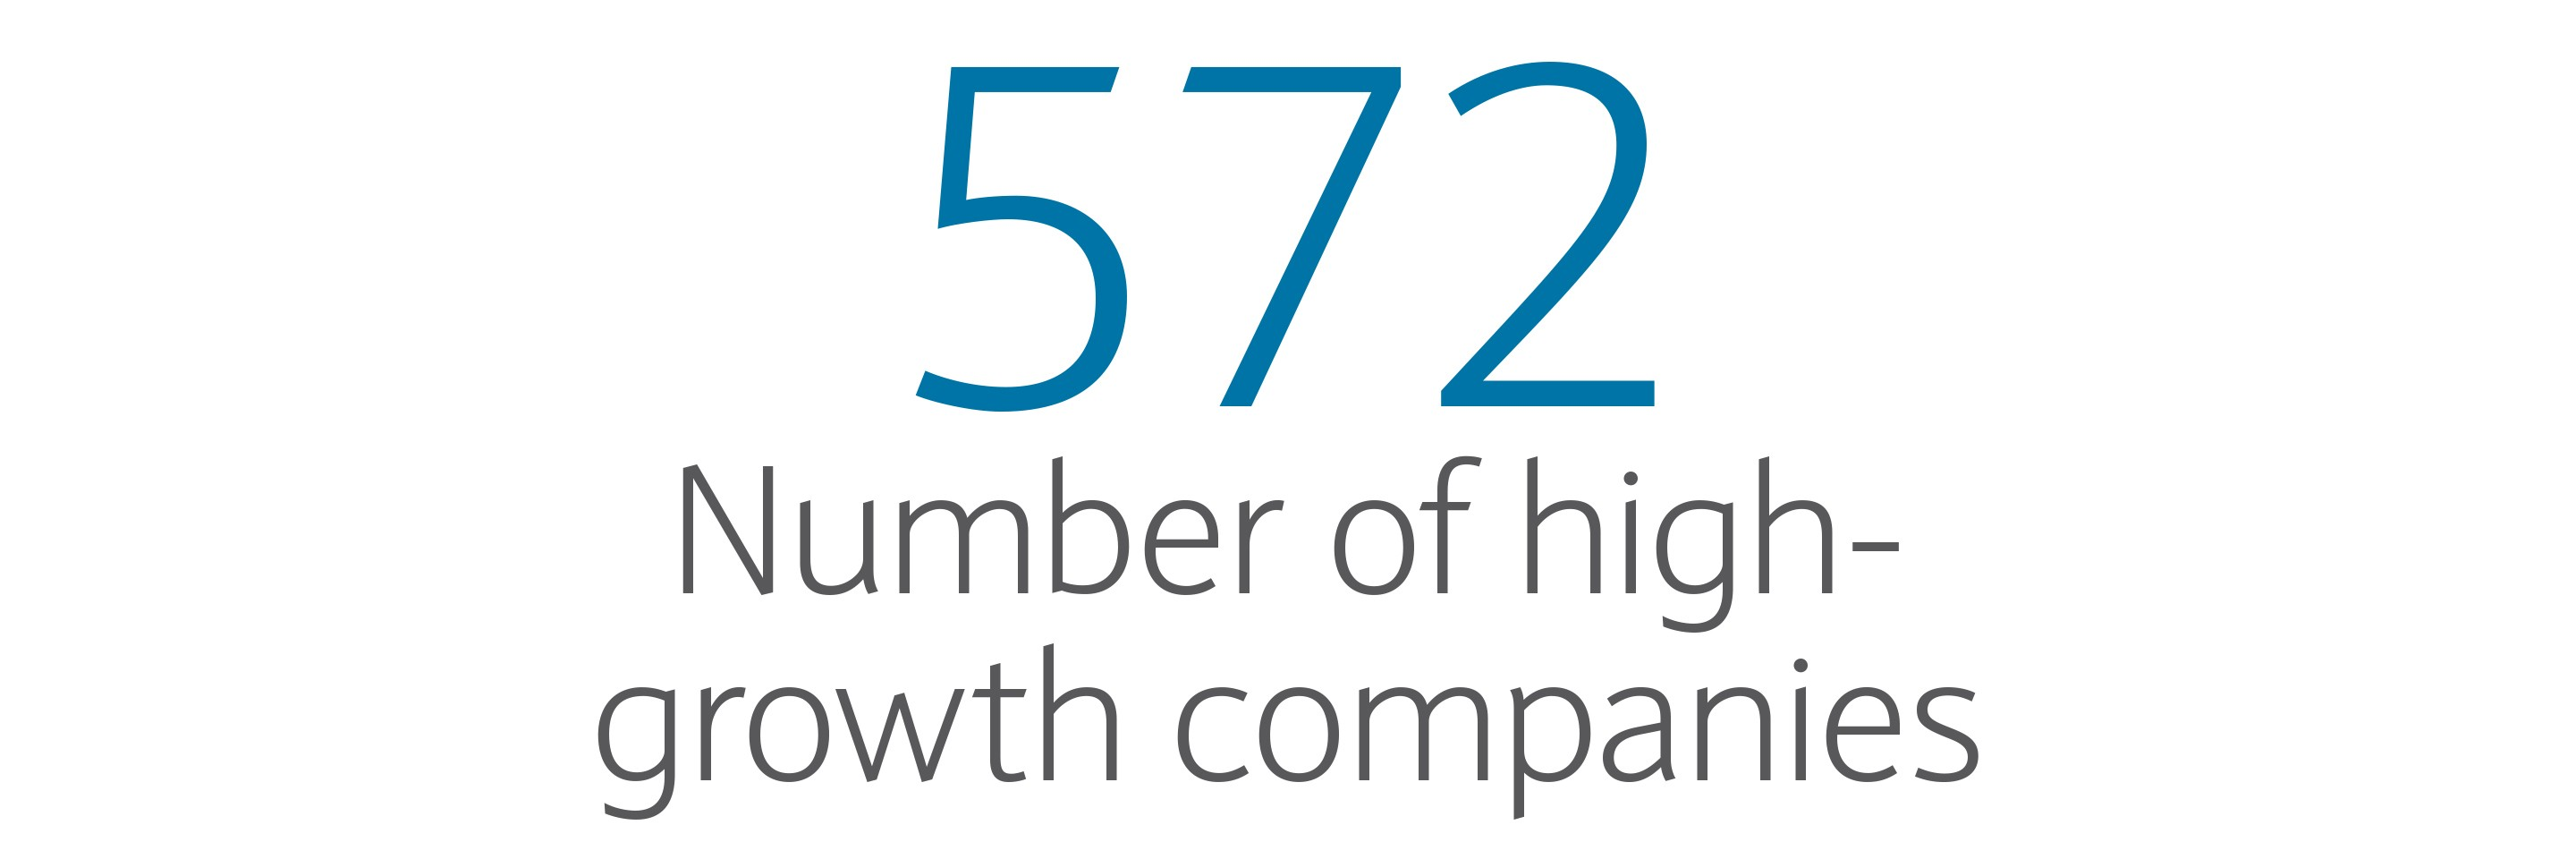 572: Number of high-growth companies